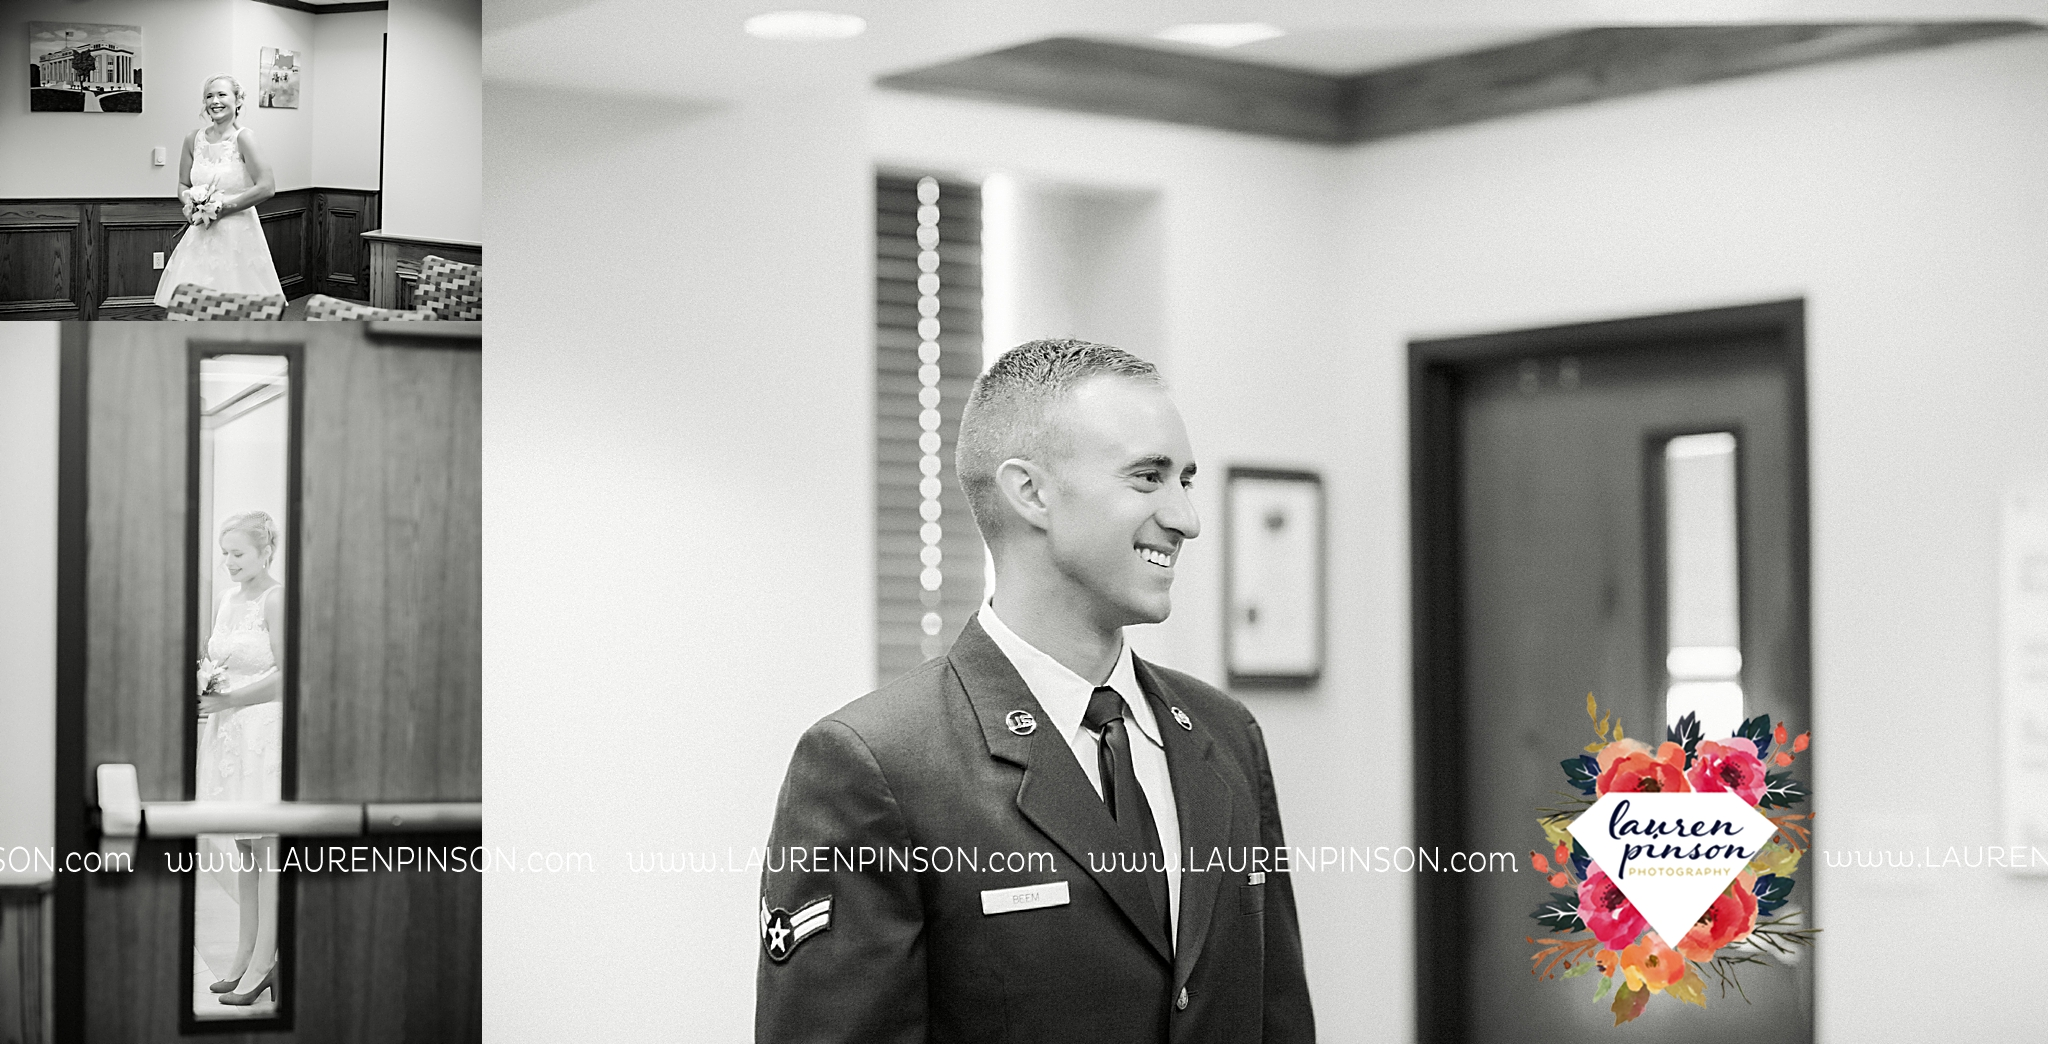 sheppard-afb-wichita-falls-texas-elopement-courthouse-wedding-photographer-justice-of-the-peace-judge-little-ceremony_3273.jpg